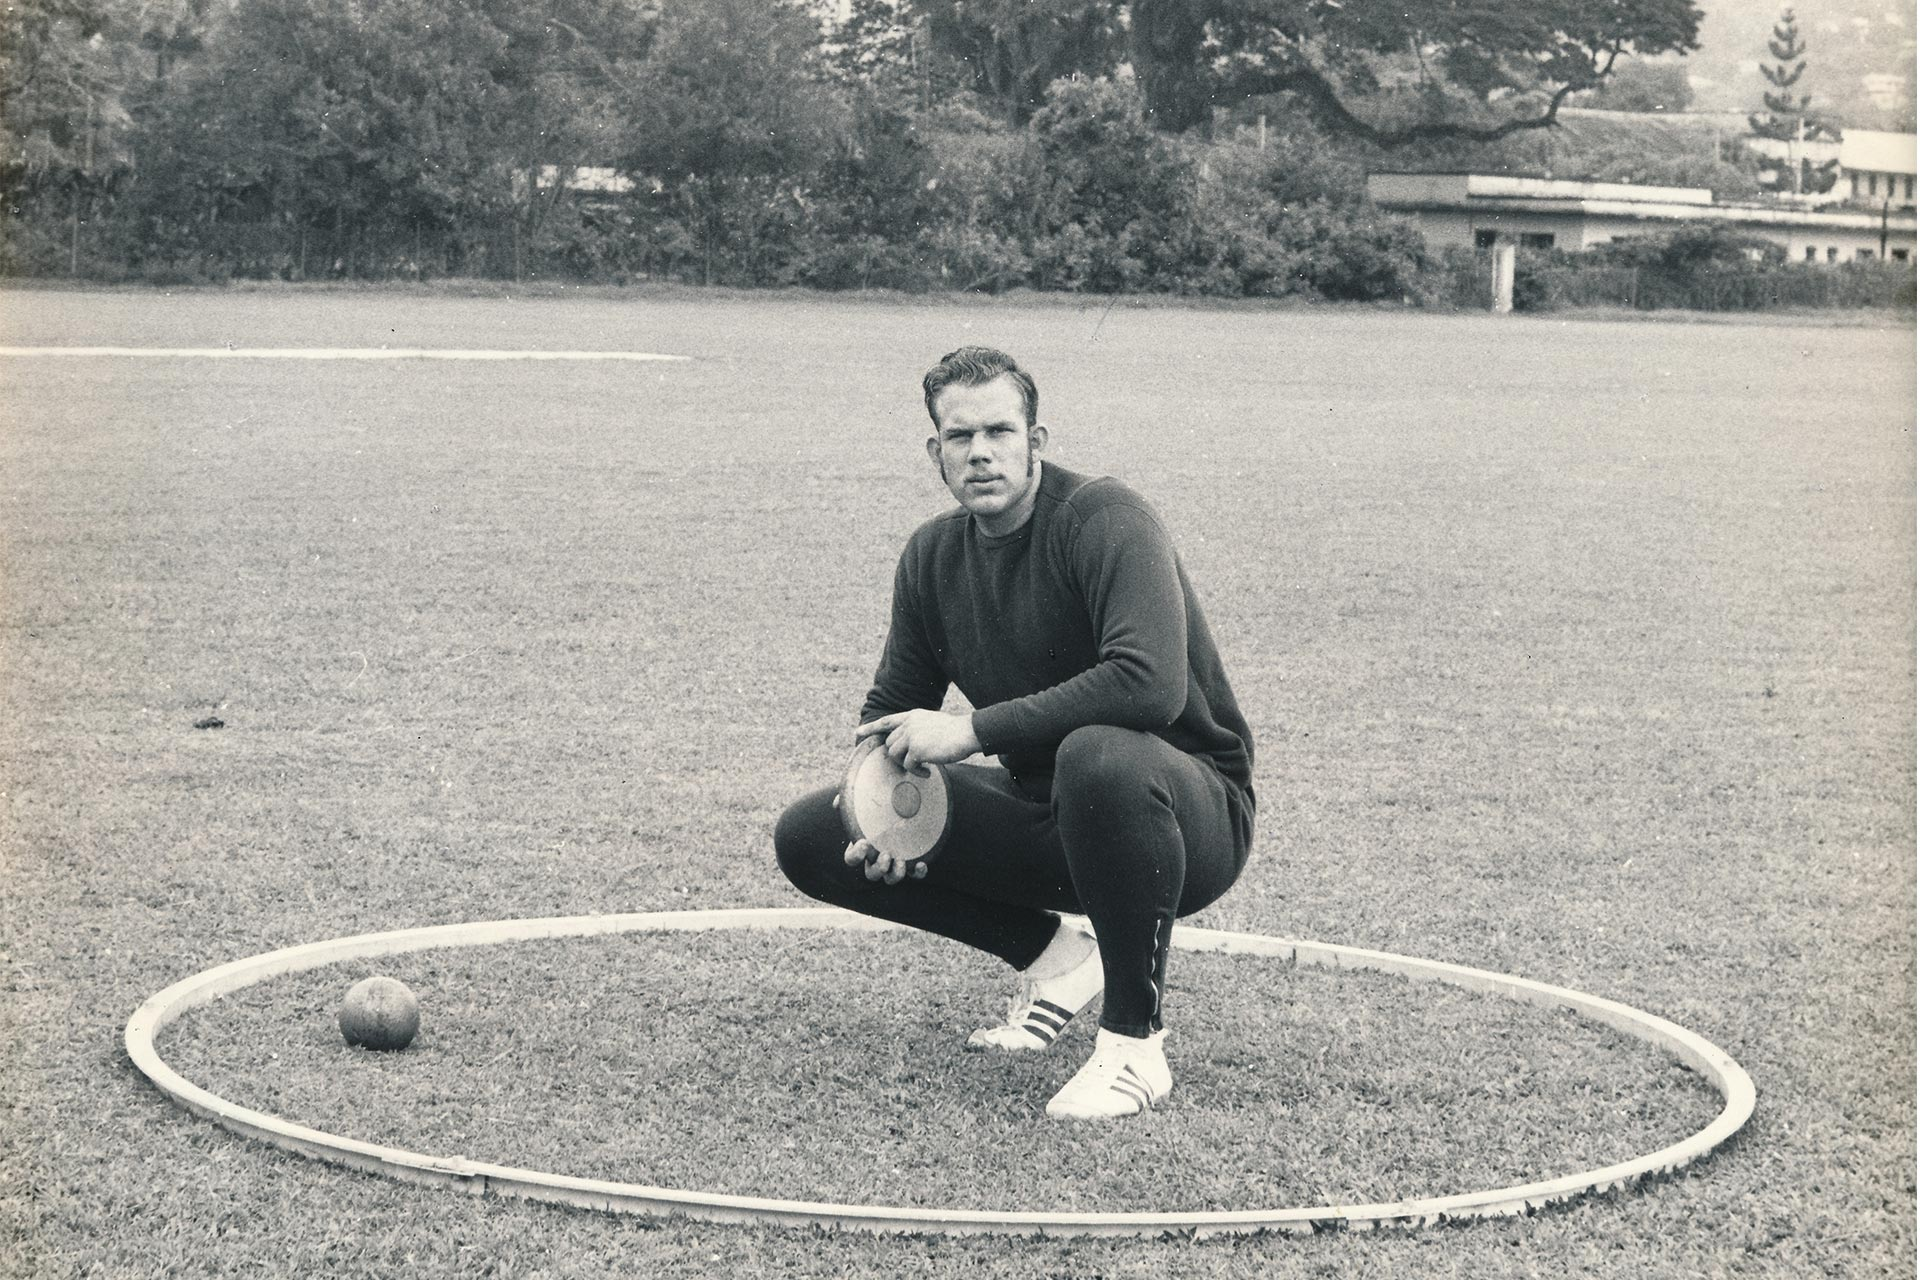 Patrick Gooding in an old photo with track and field equipment